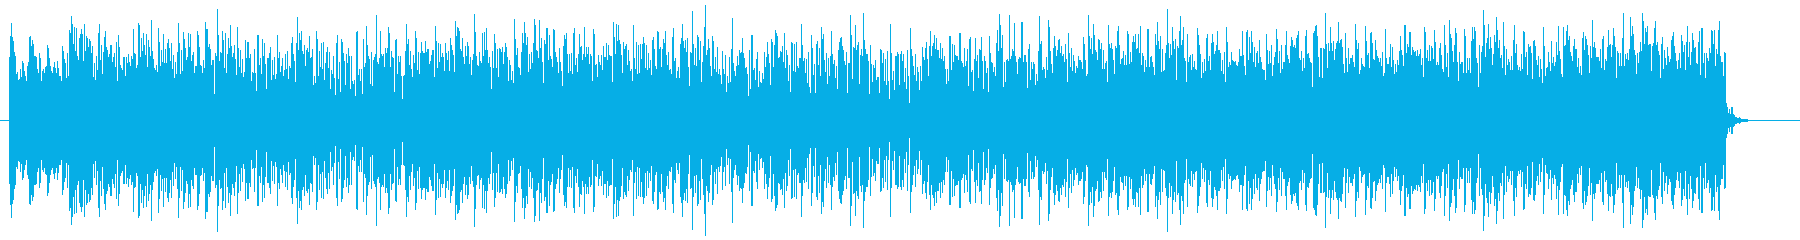 A solid sense of lock that overflows's reproduced waveform